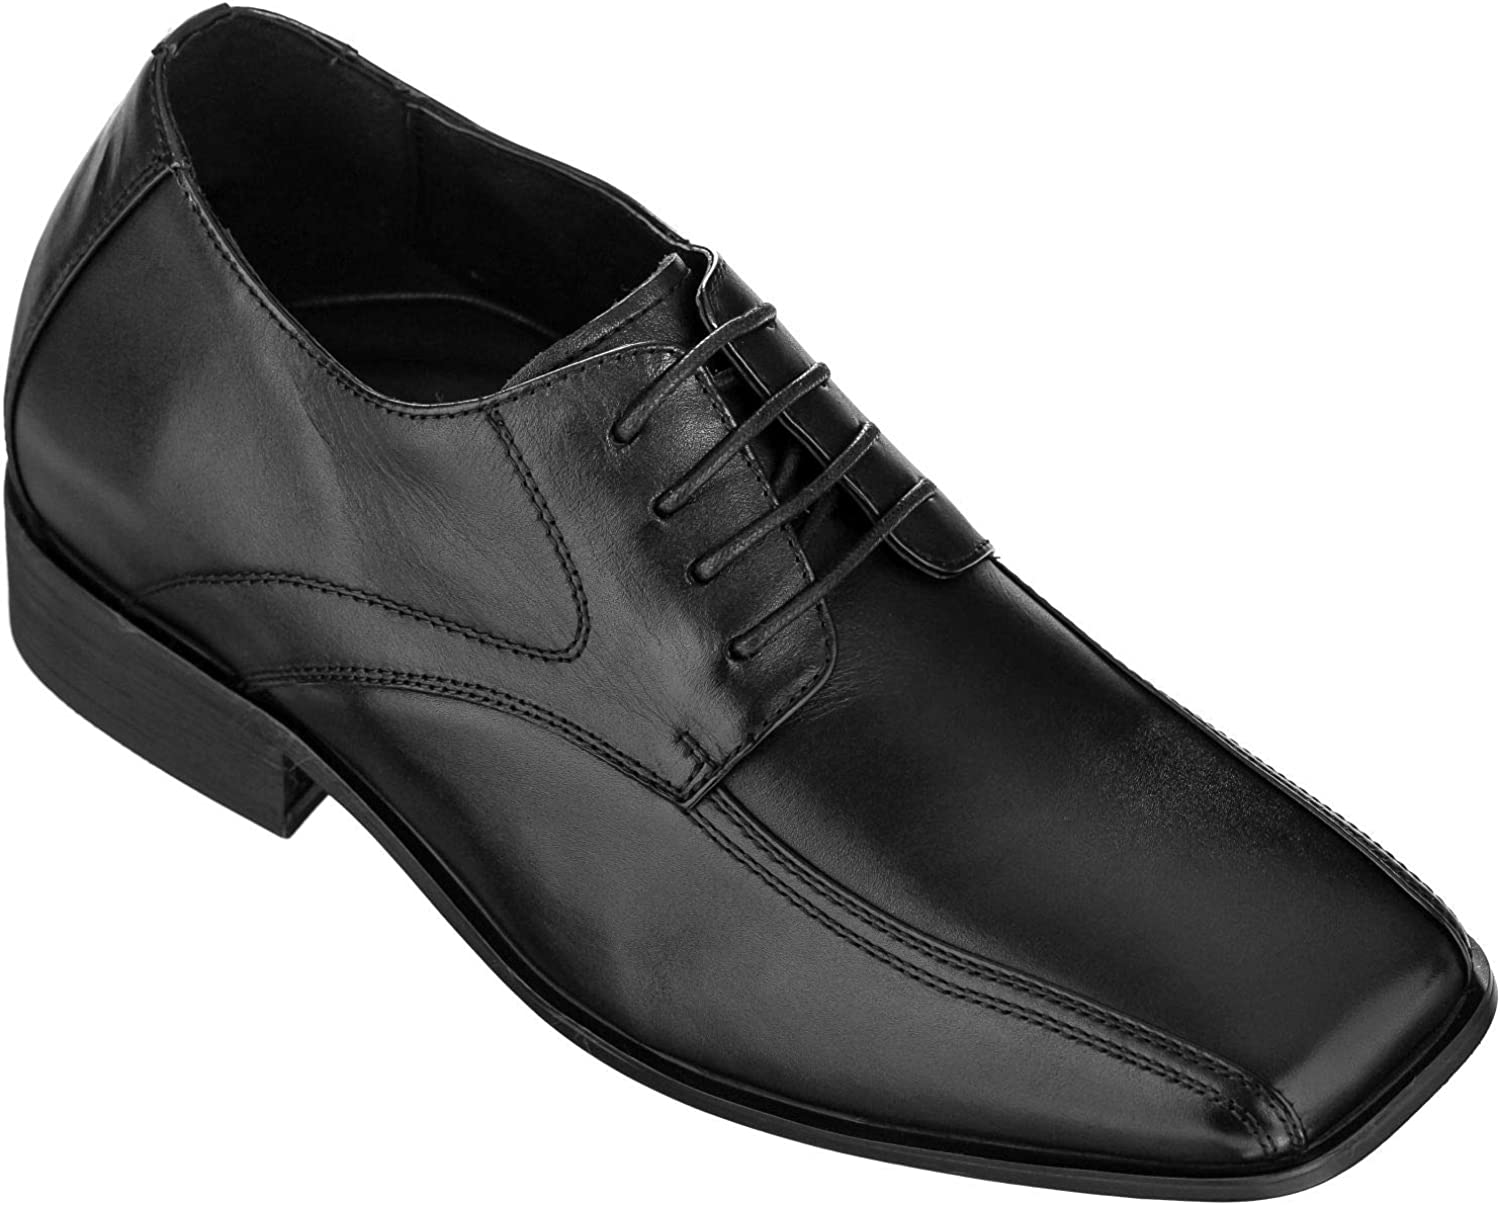 CALDEN K0286-2.8 Inches Taller - Height Increasing shoes for Men (Black Lace-up Bicycle Square Toe)